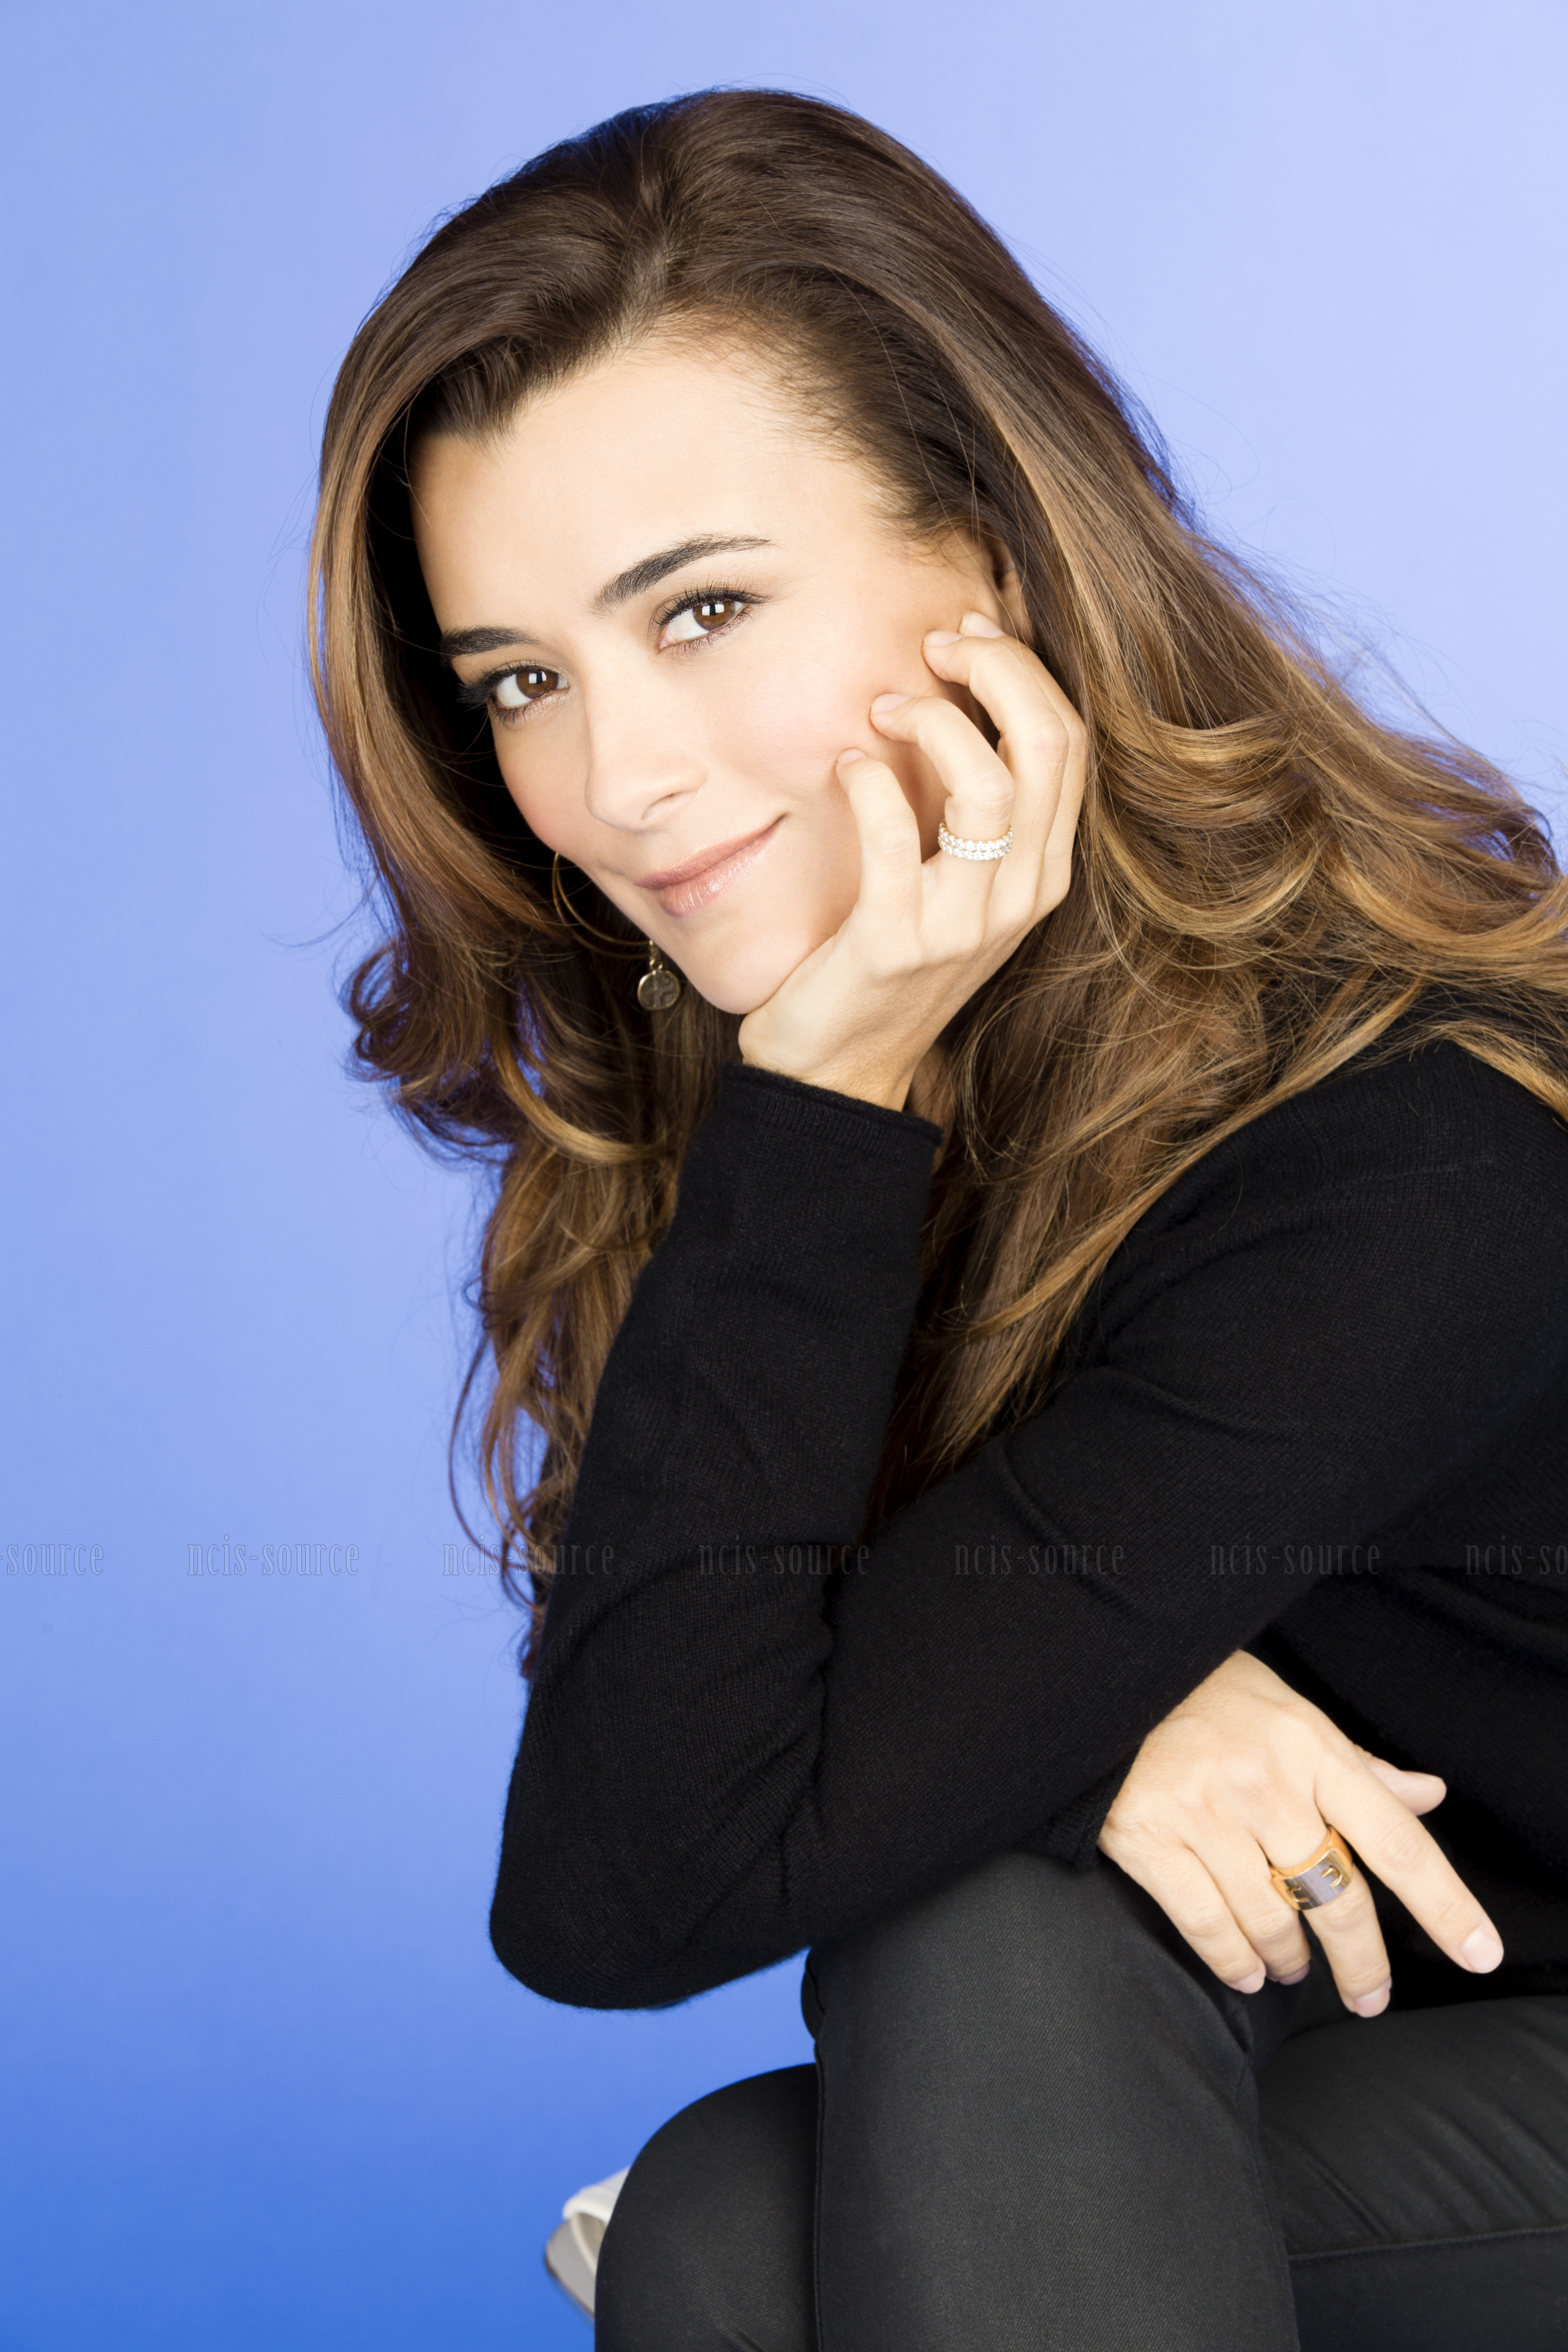 Cote de Pablo Images on Fanpop